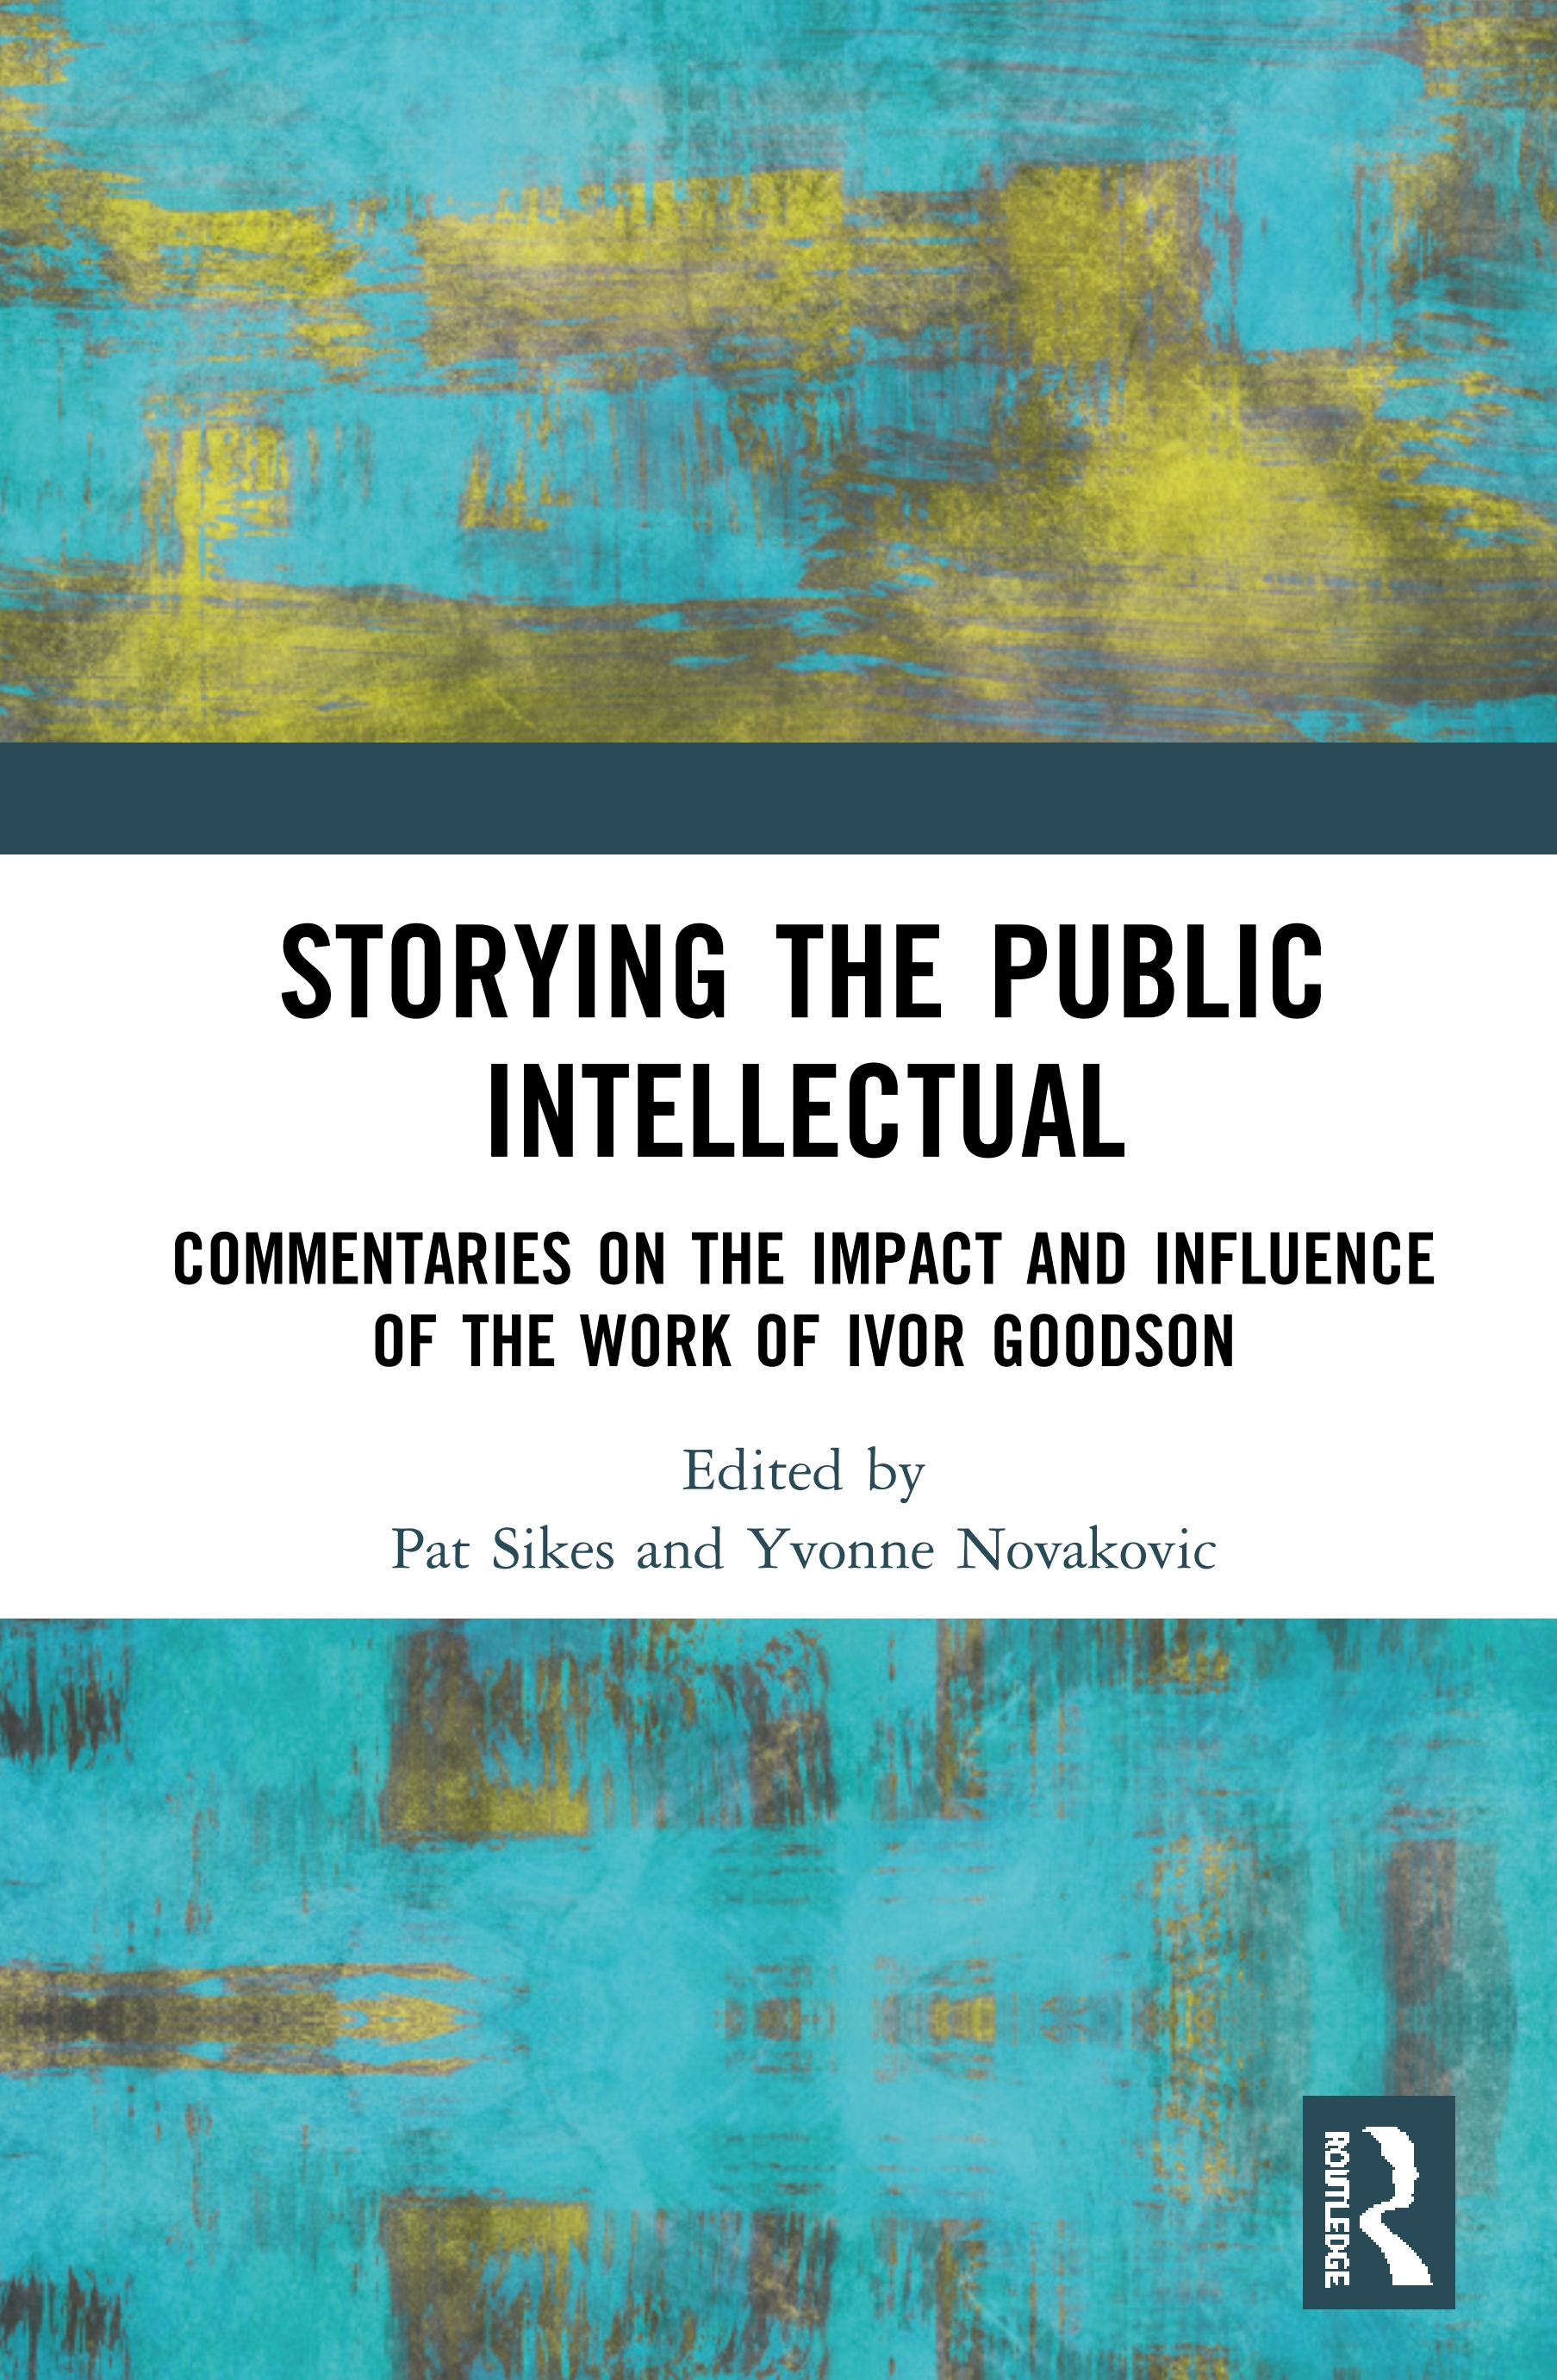 Storying the Public Intellectual: Commentaries on the Impact and Influence of the Work of Ivor Goodson book cover